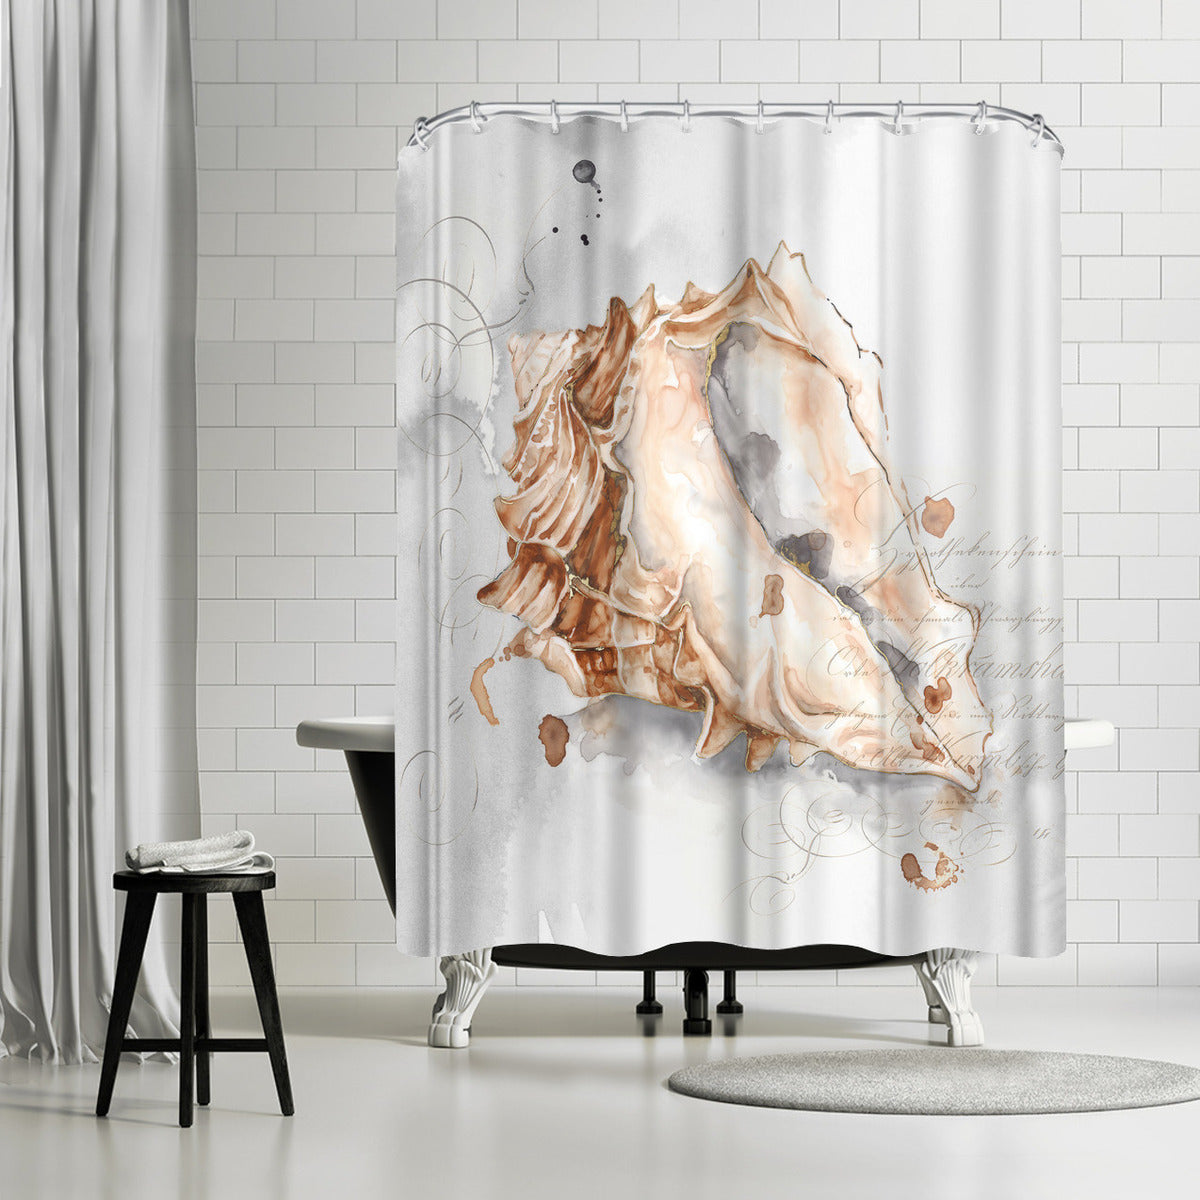 Blush Shell Iii by PI Creative Art Shower Curtain - Shower Curtain - Americanflat